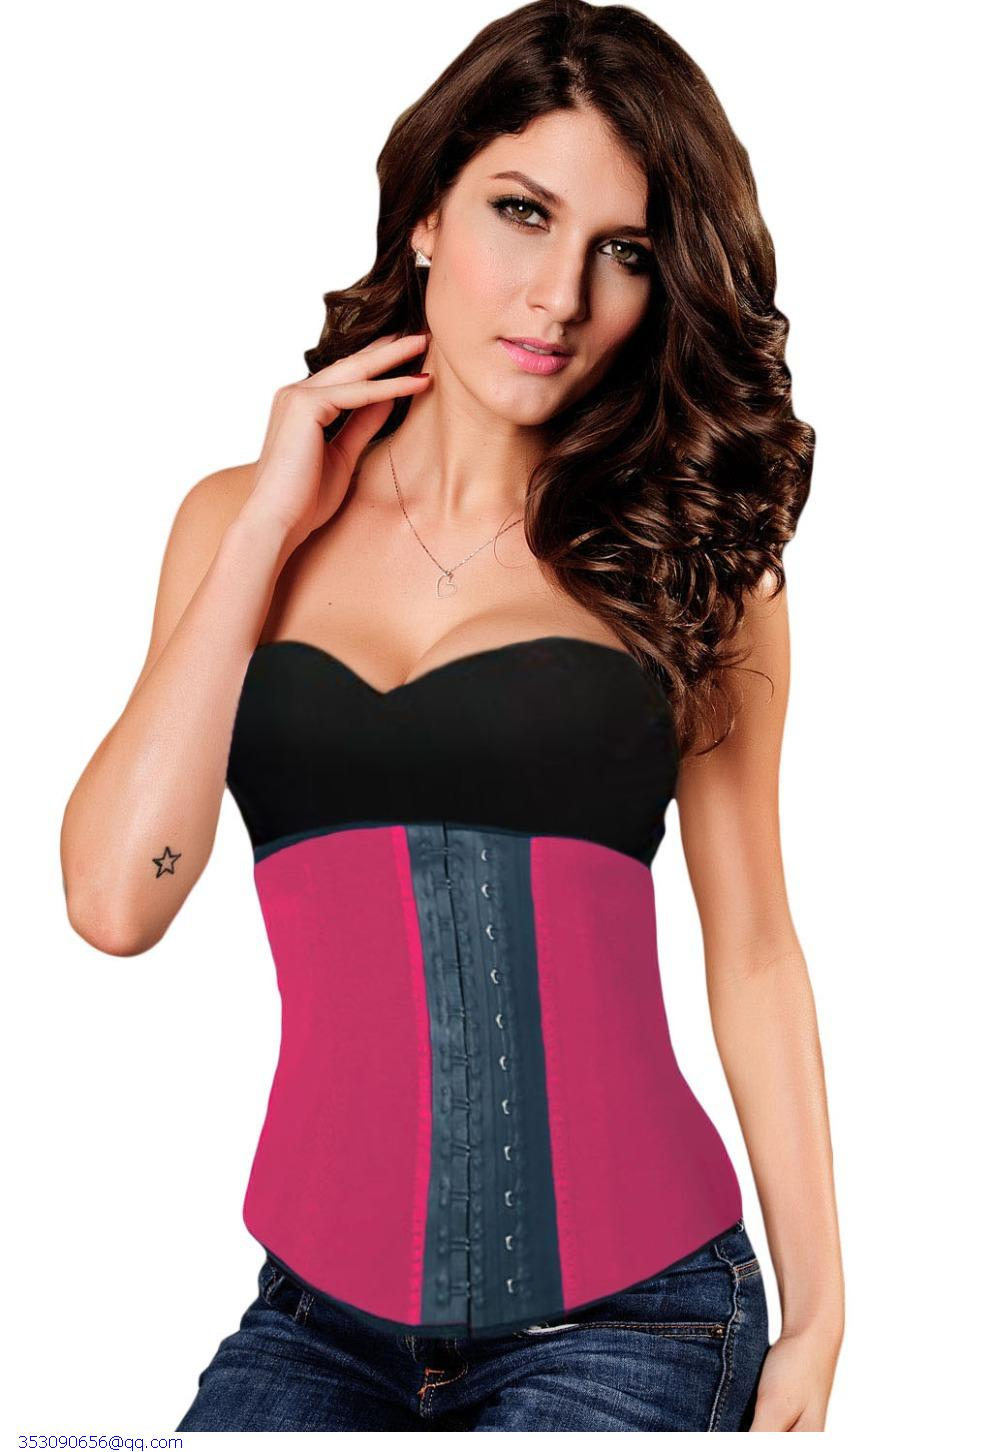 f4cde4eafbd Get Quotations · 2015 Sexy Women Rosy Blue 9 Steel Boned Latex Waist  Training Steampunk Underbust Corset Plus